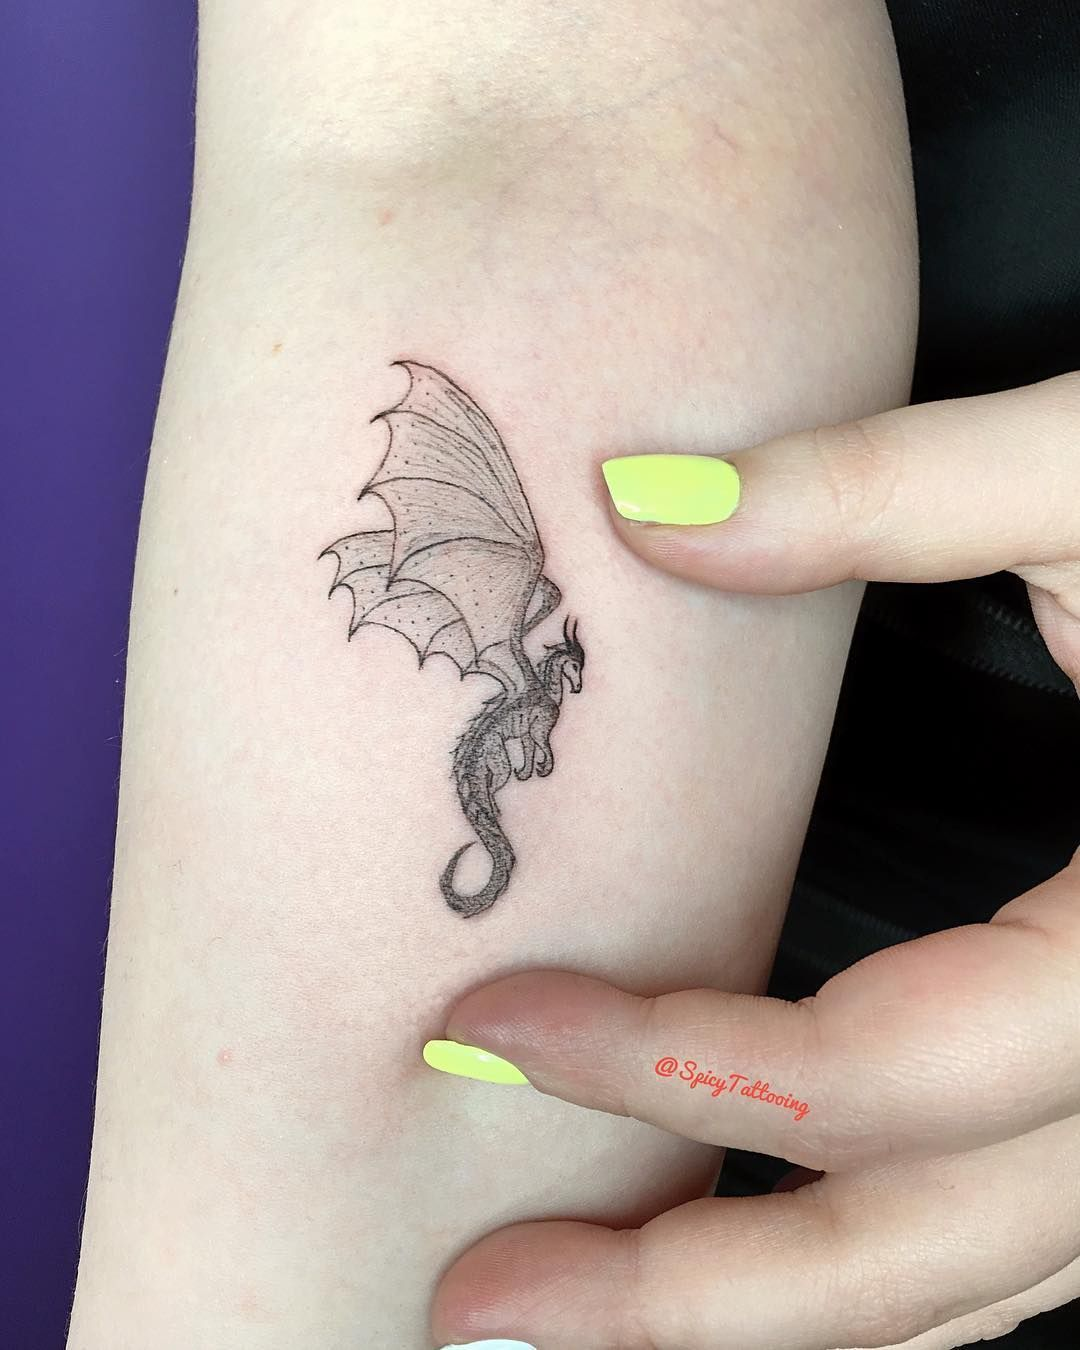 Tiny Tattoo Of Dragon From Game Of Thrones Small Size Mini Tattoo Of Dragon Inspired By Game Of Thr In 2020 Dragon Tattoo For Women Tiny Tattoos Baby Dragon Tattoos